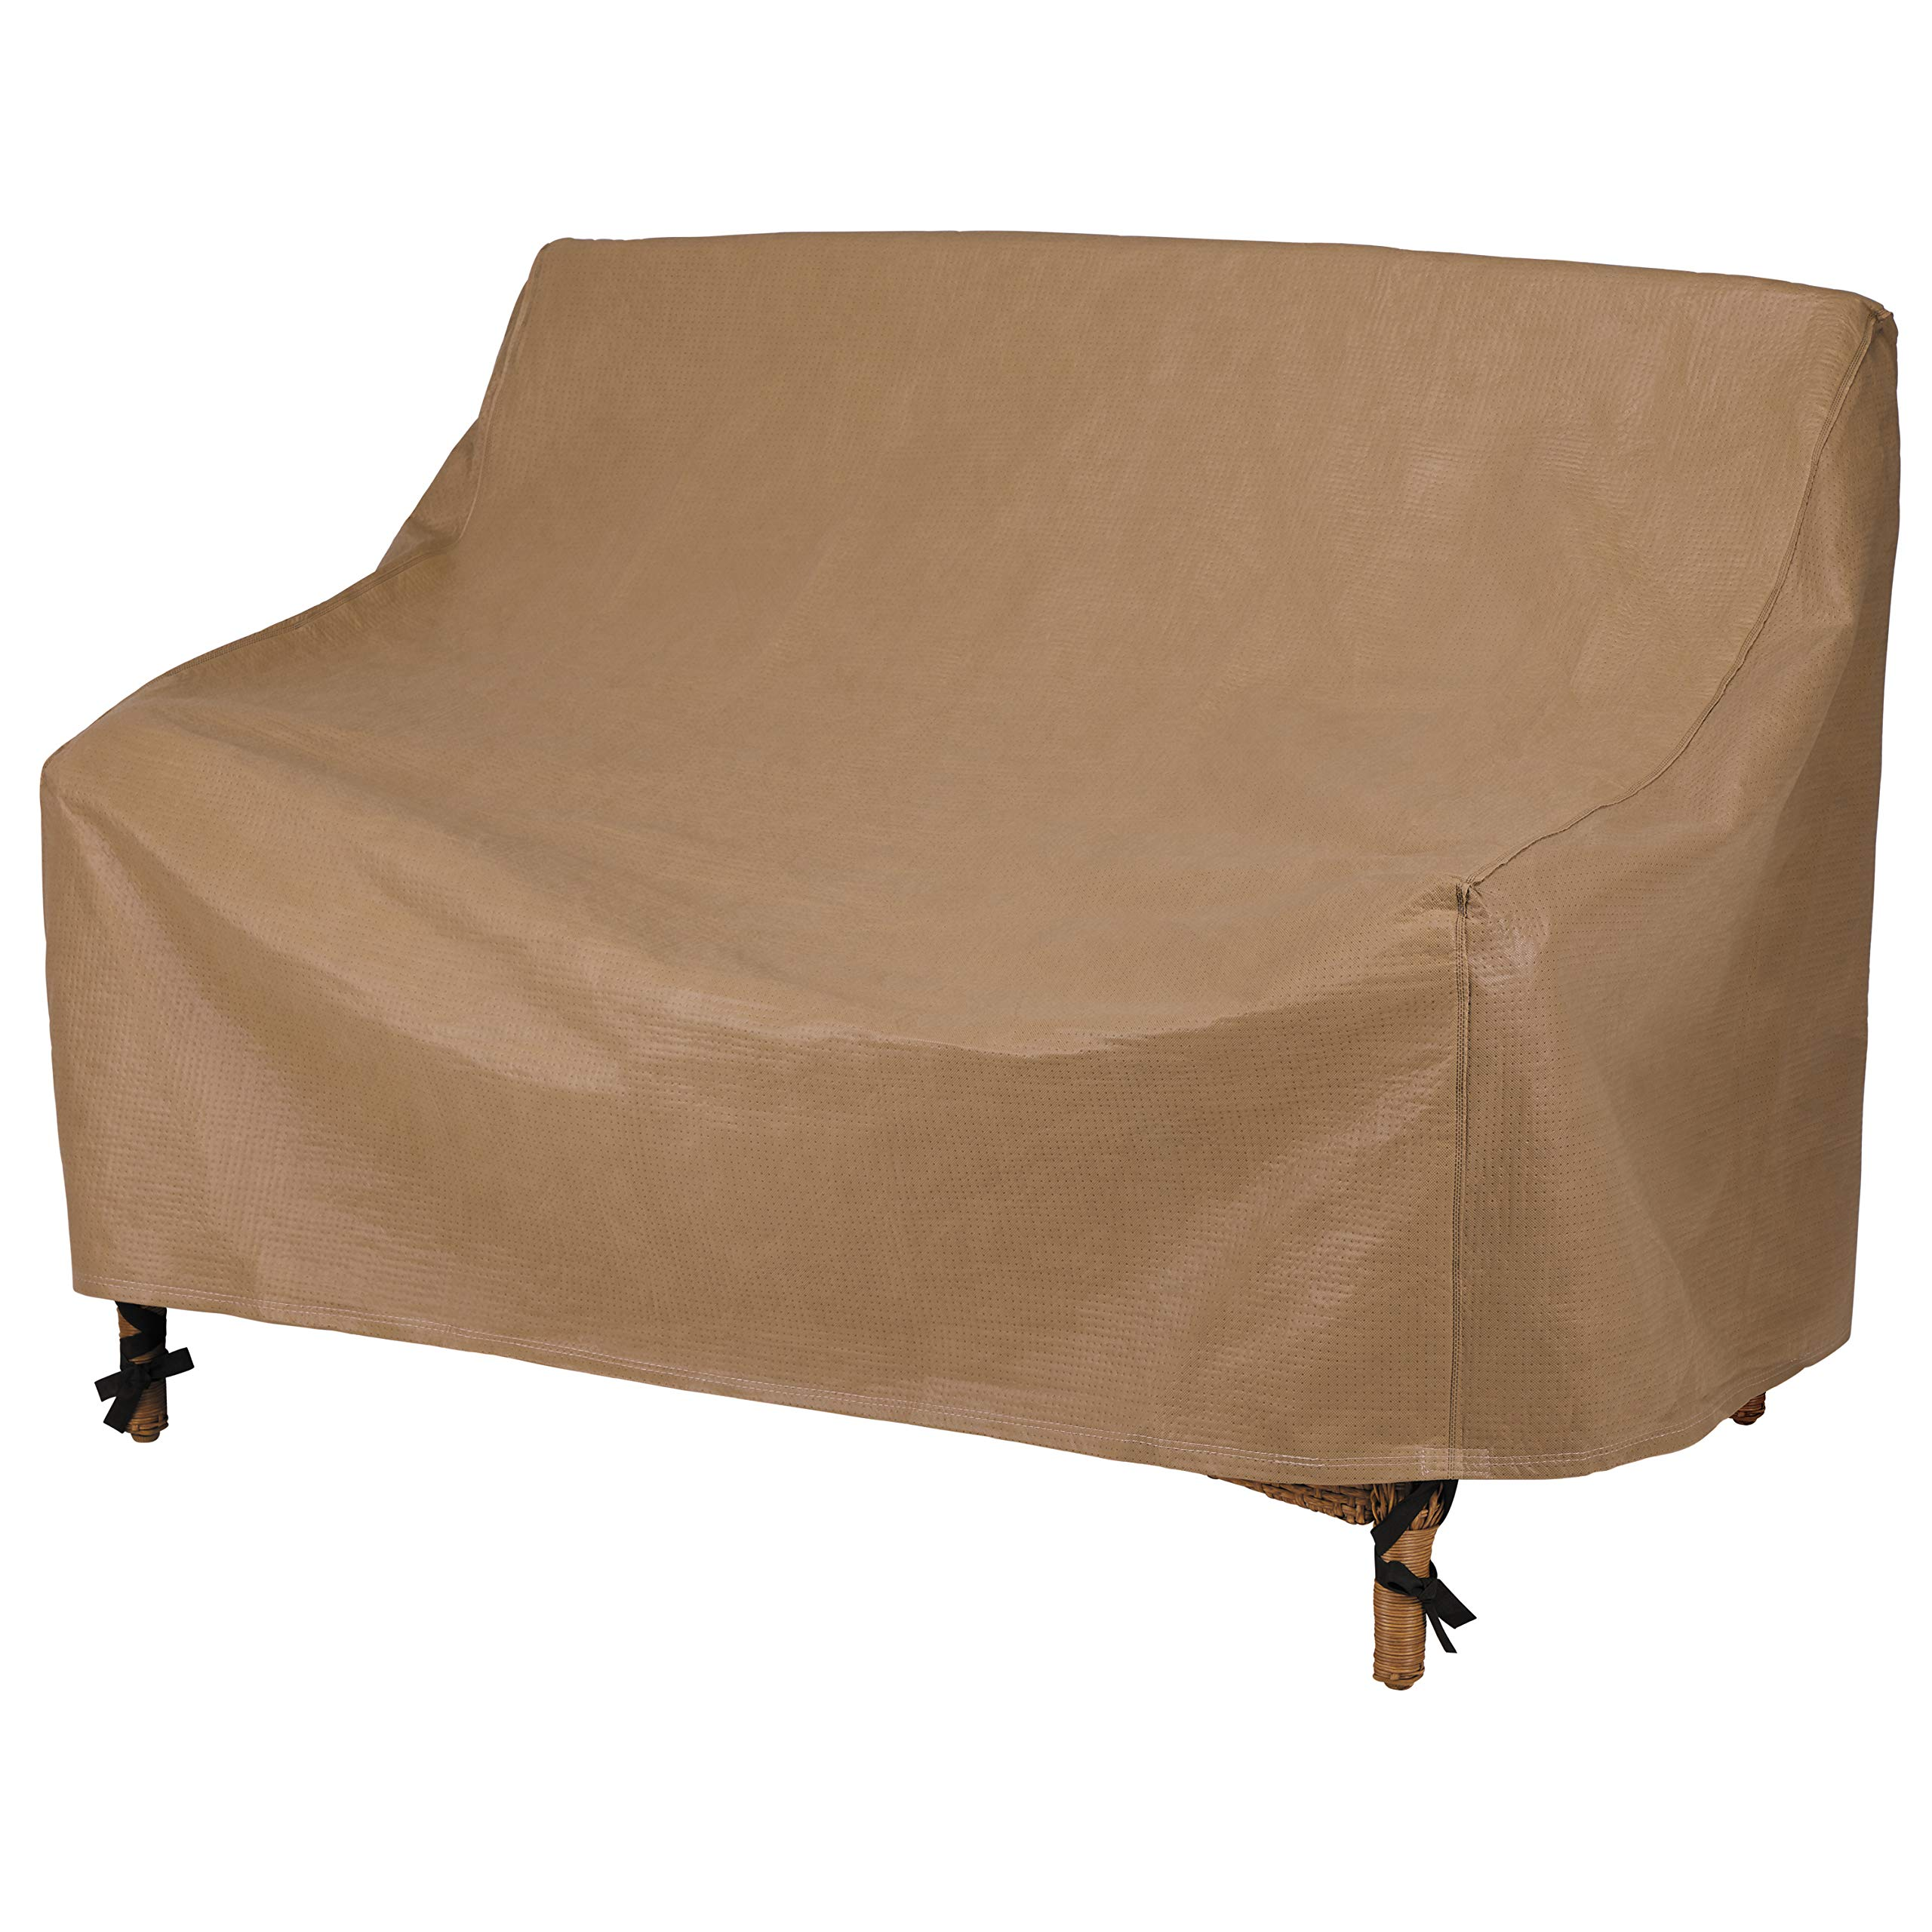 Duck Covers Essential Patio Loveseat Cover, 54-Inch by Duck Covers